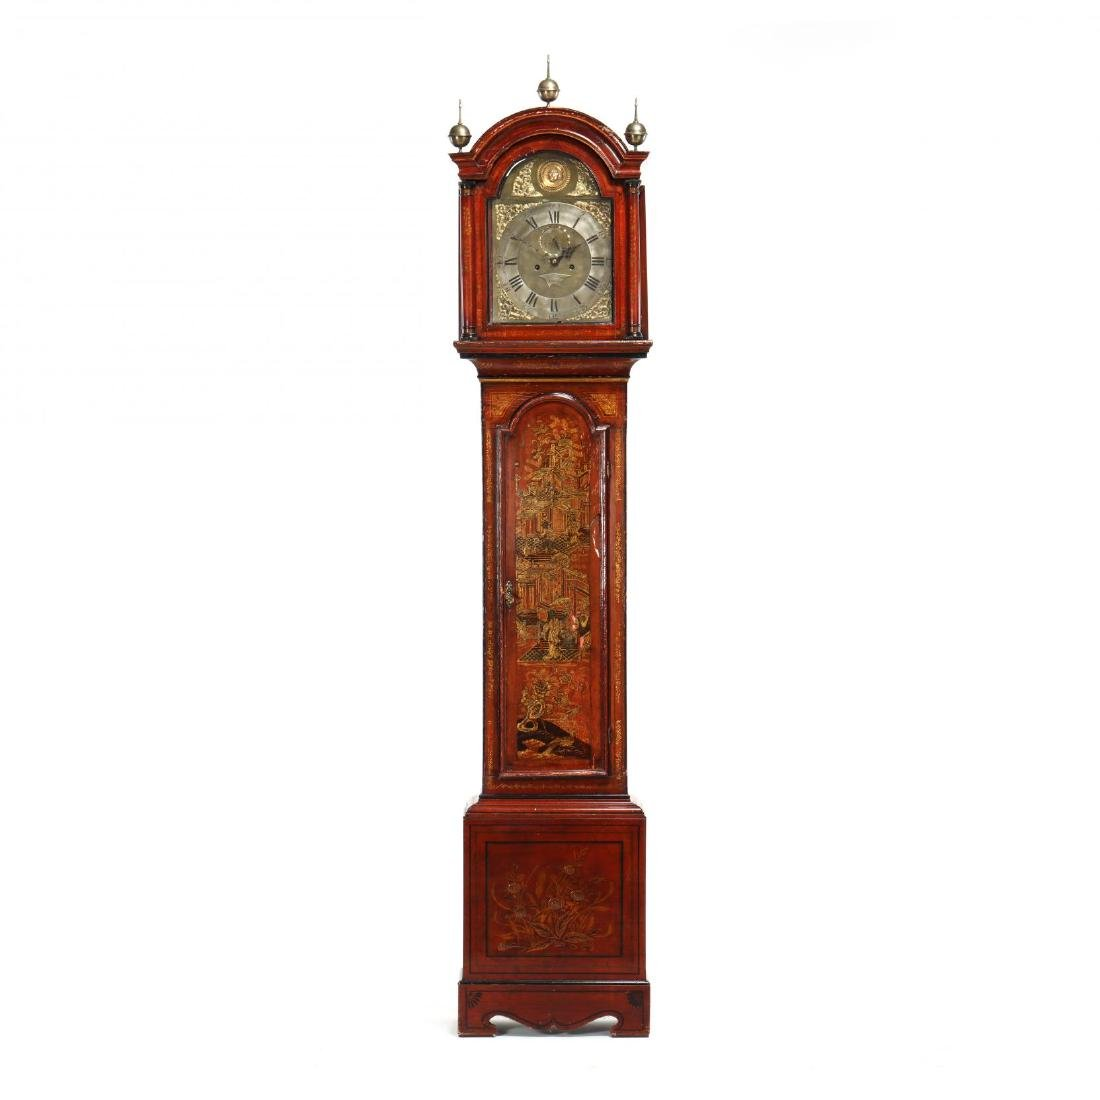 English Chinoiserie Tall Case Clock, James Smyth,